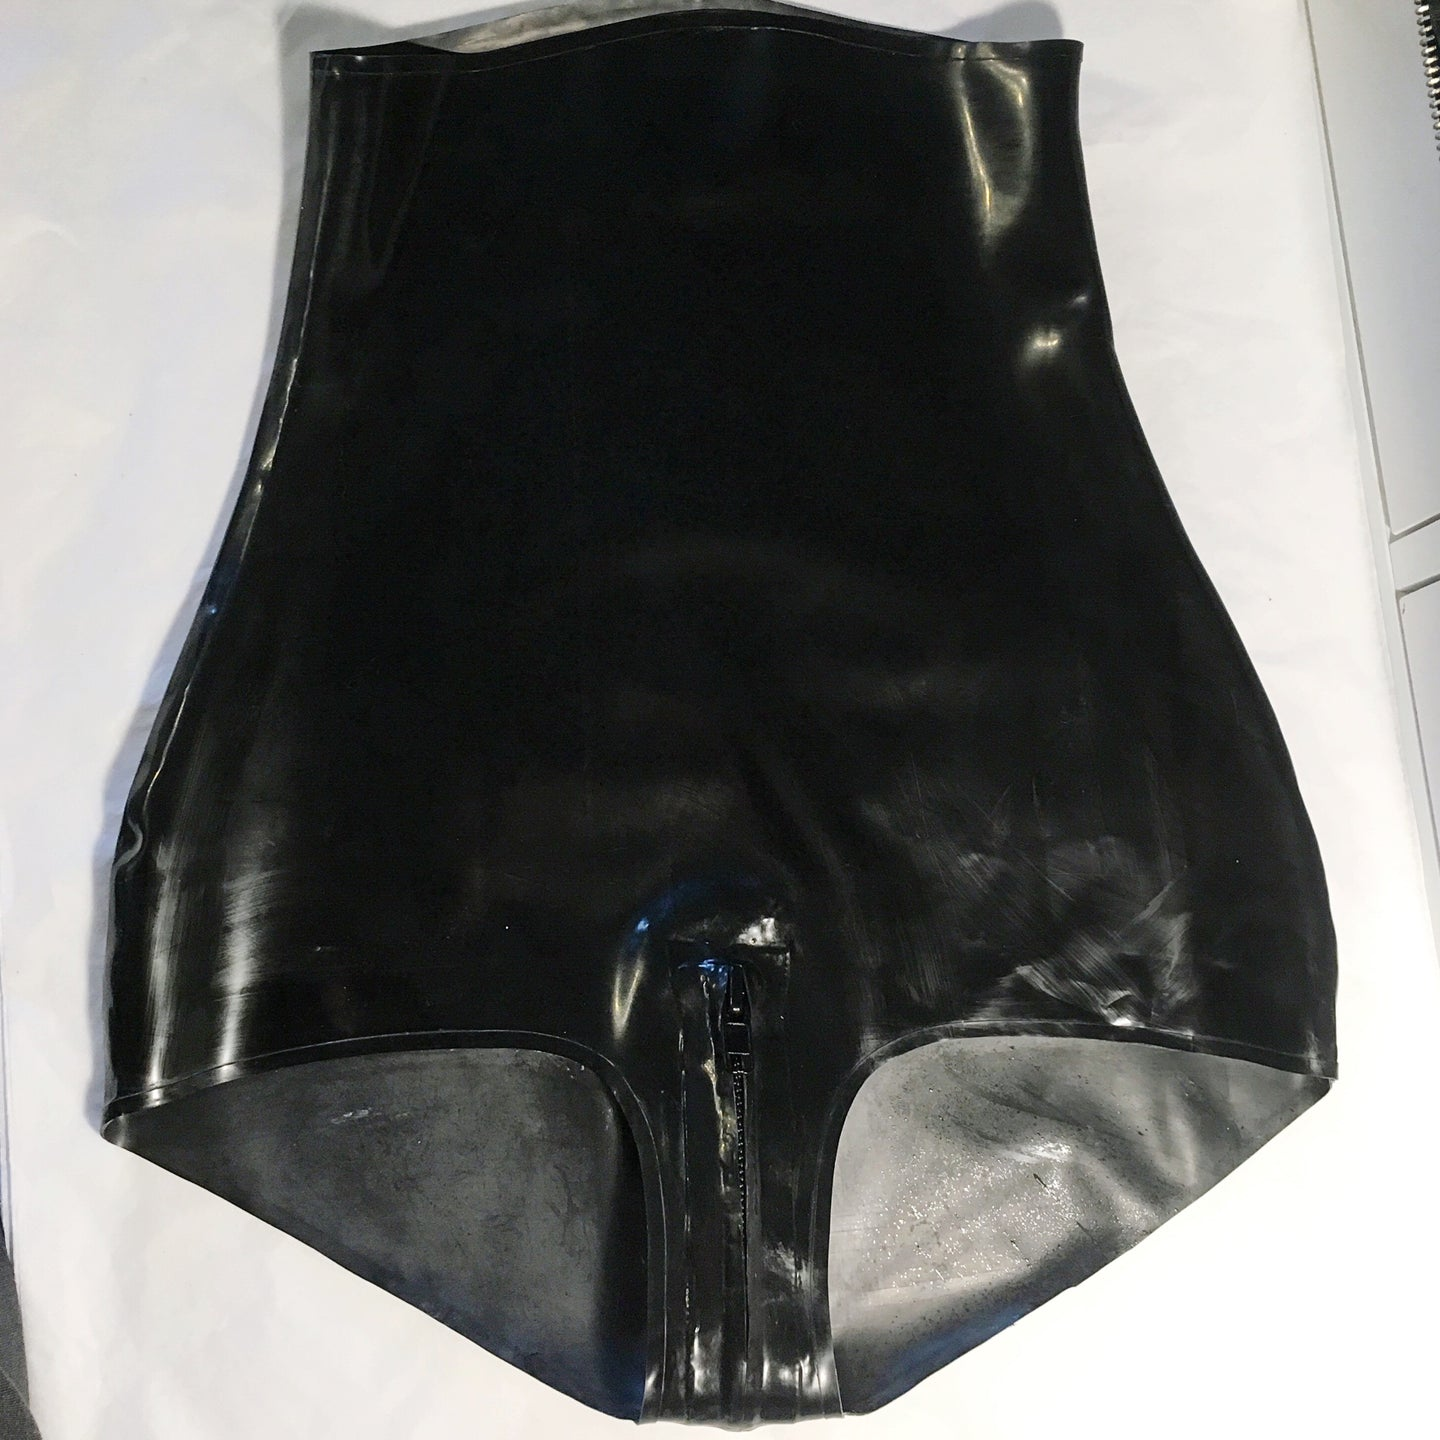 Crotch zipper (to be added to an item of your choice)